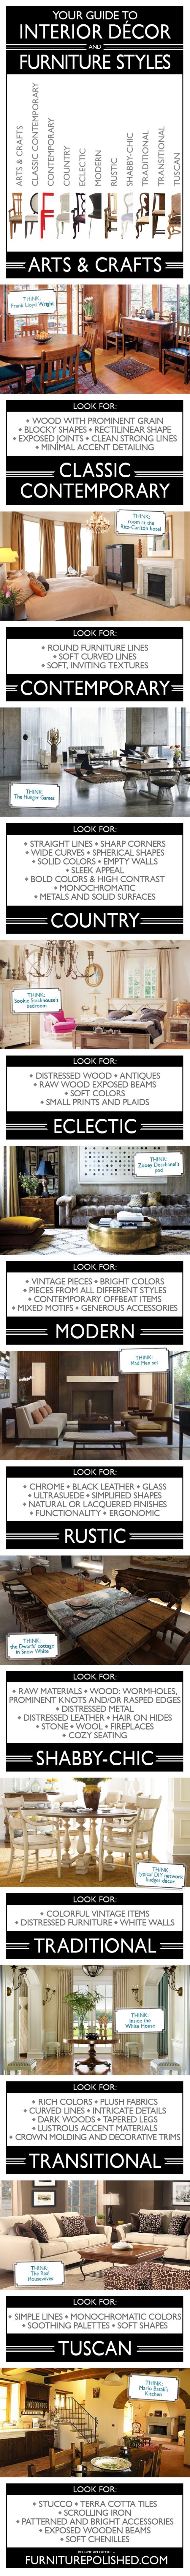 best 25 sheets on sale ideas only on pinterest cheat sheets decide on a furniture and interior design style for your home 50 amazingly